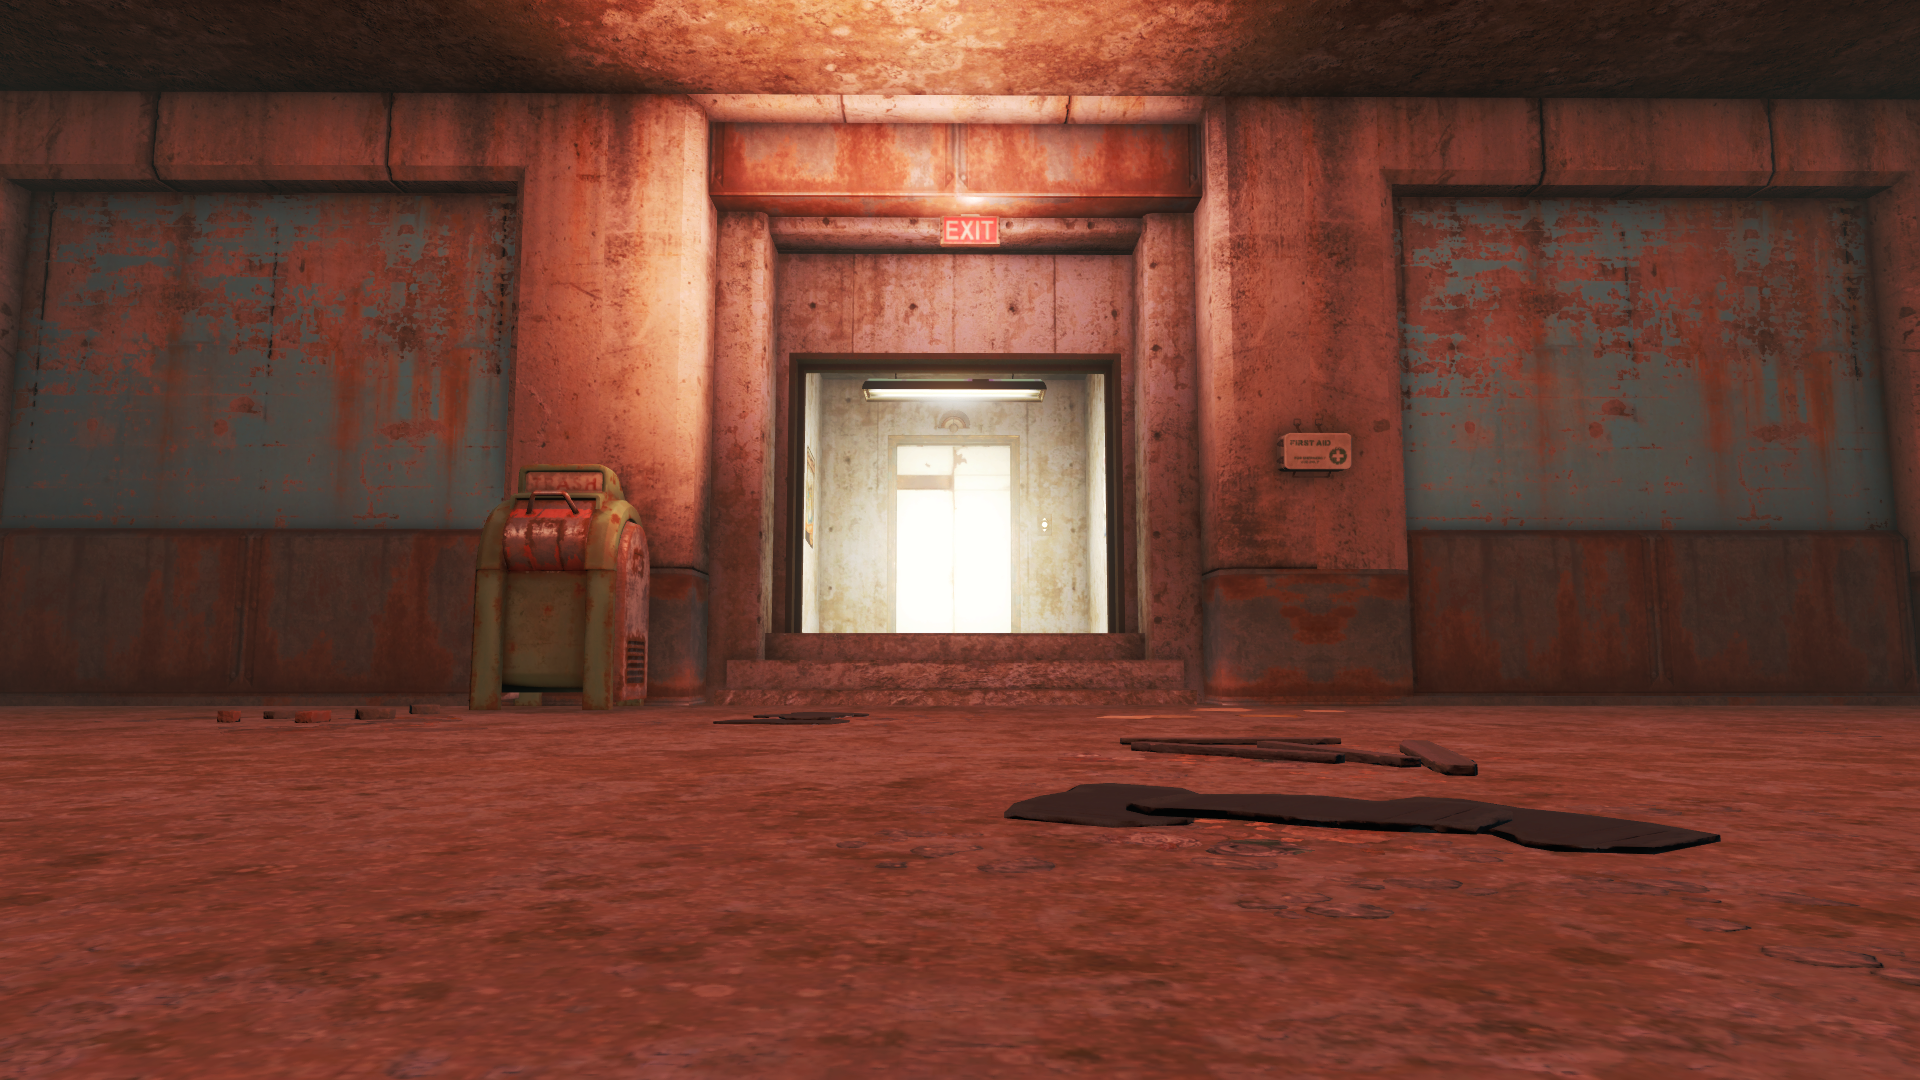 image fo4 parking garage elevator fallout wiki fandom Parking Elevator Lift fo4 parking garage elevator